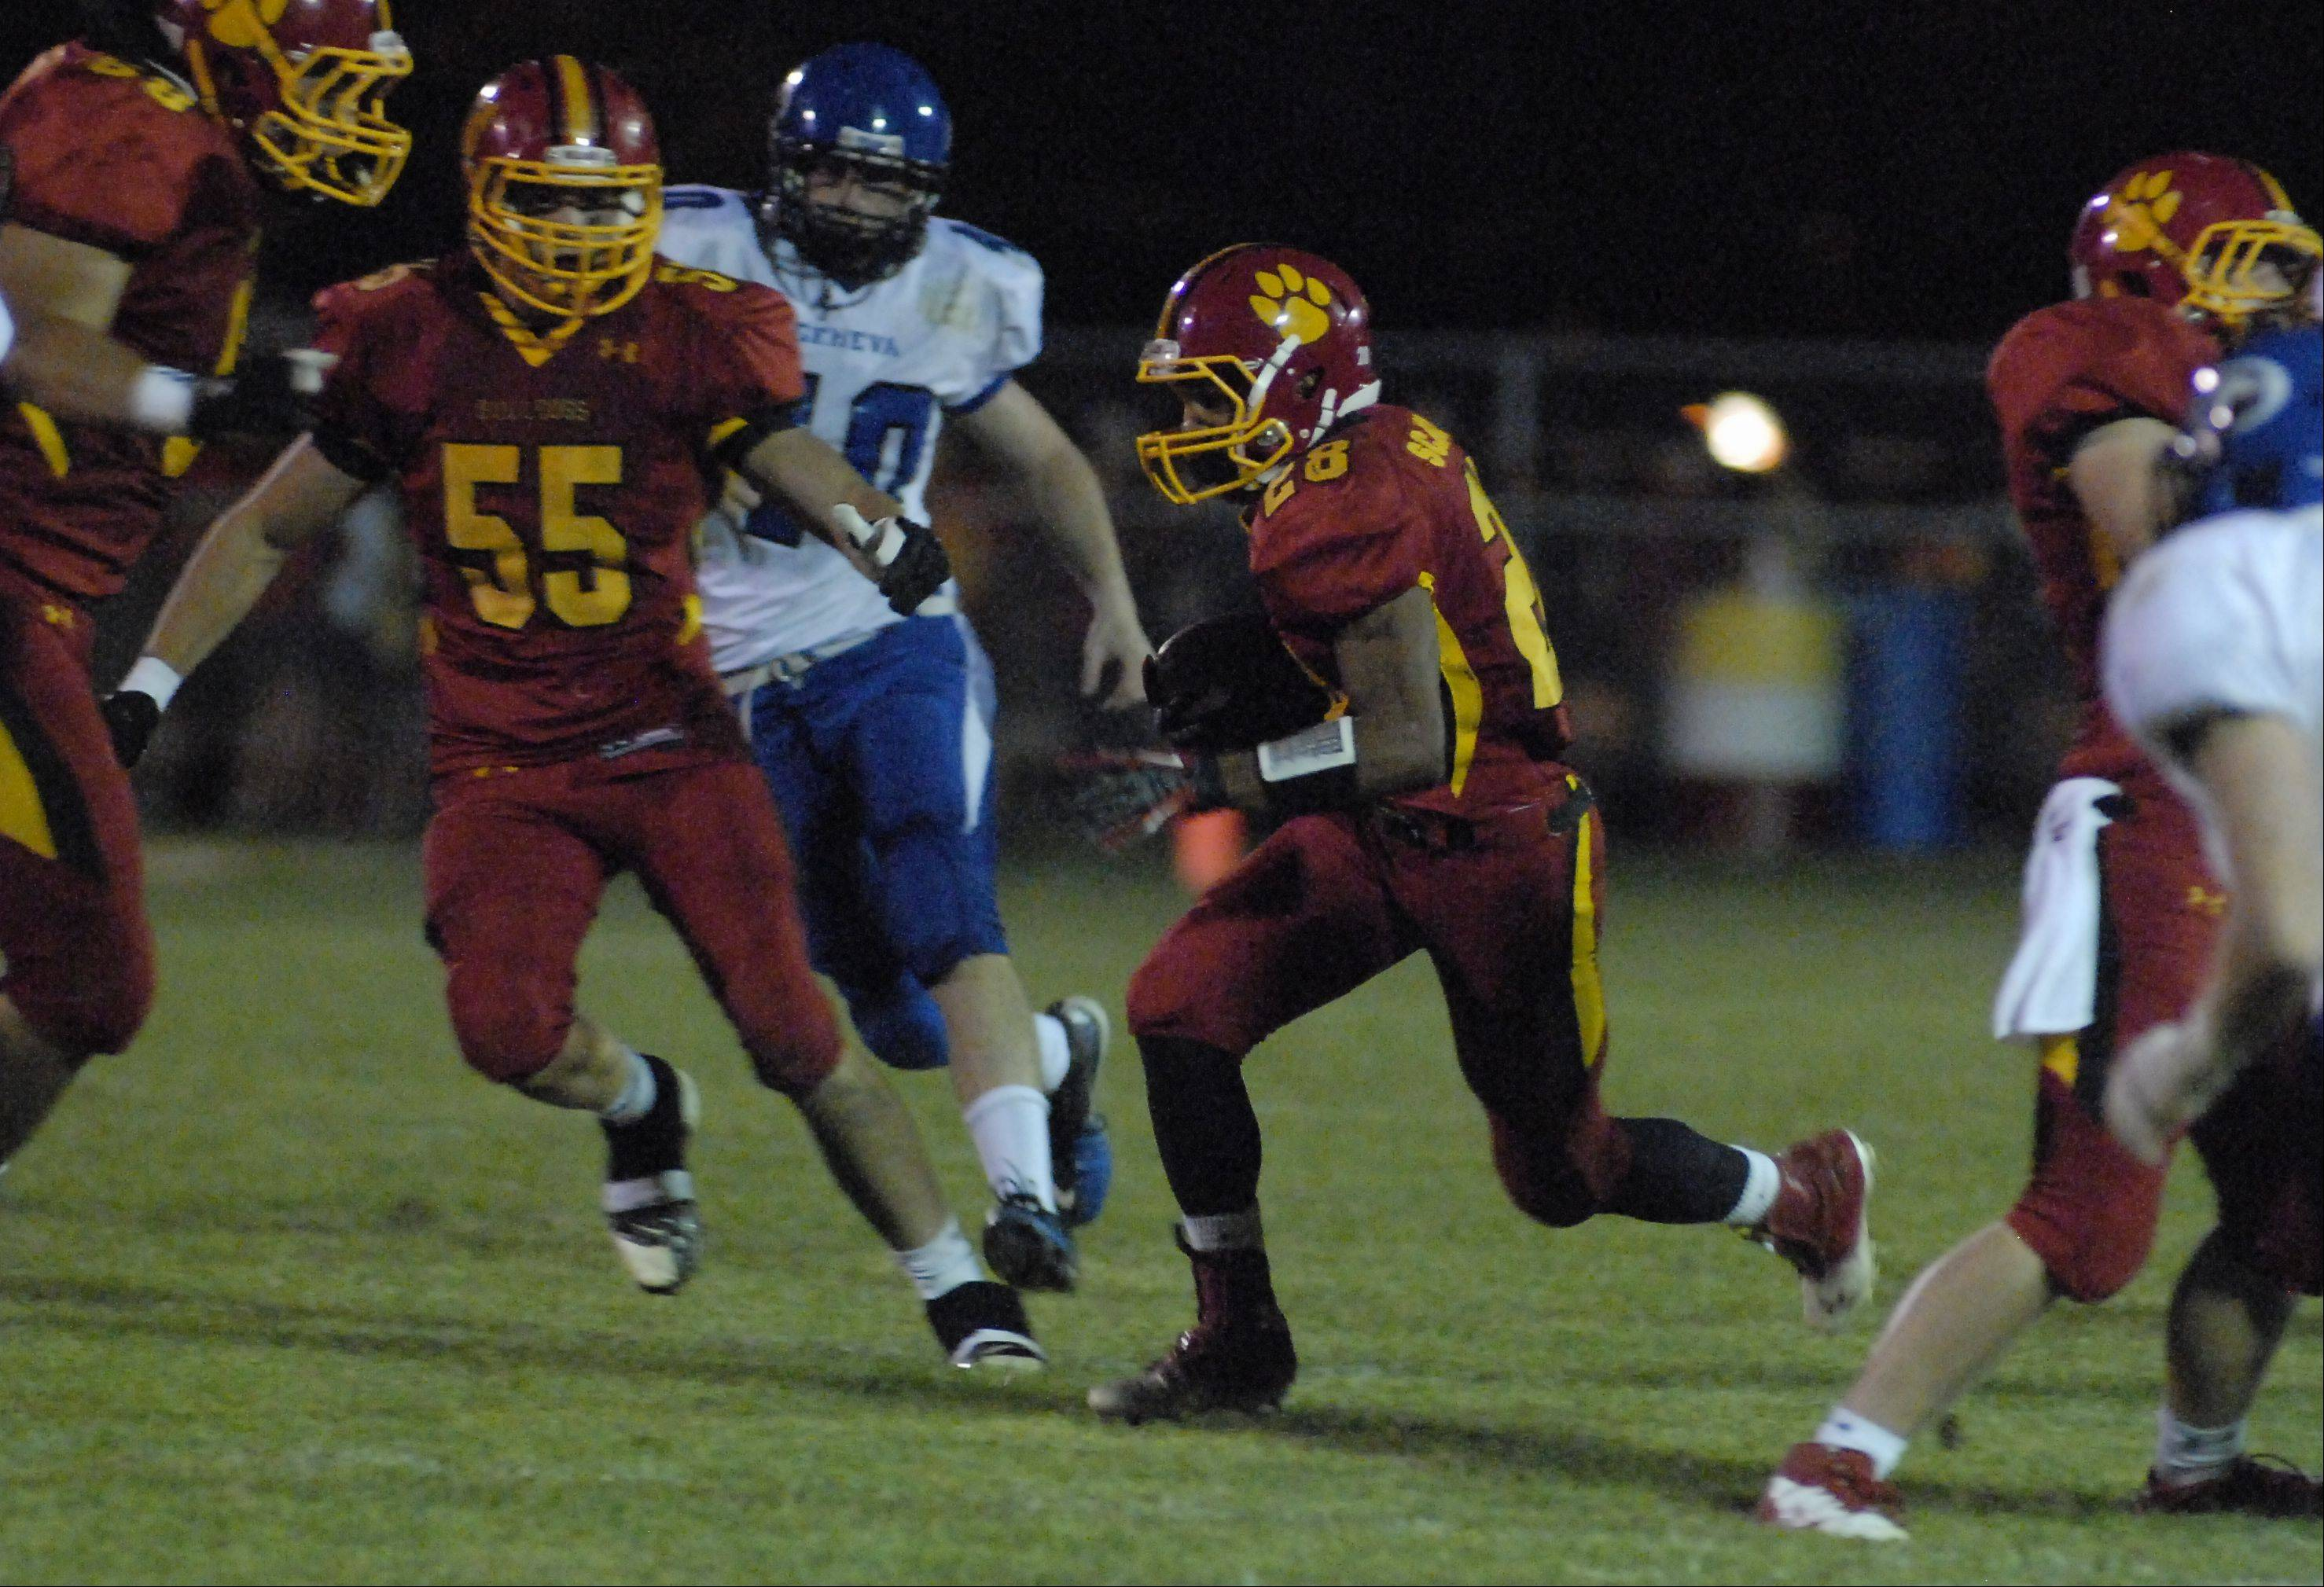 Week Three - Images from the Geneva vs. Batavia football game Friday, September 7, 2012.